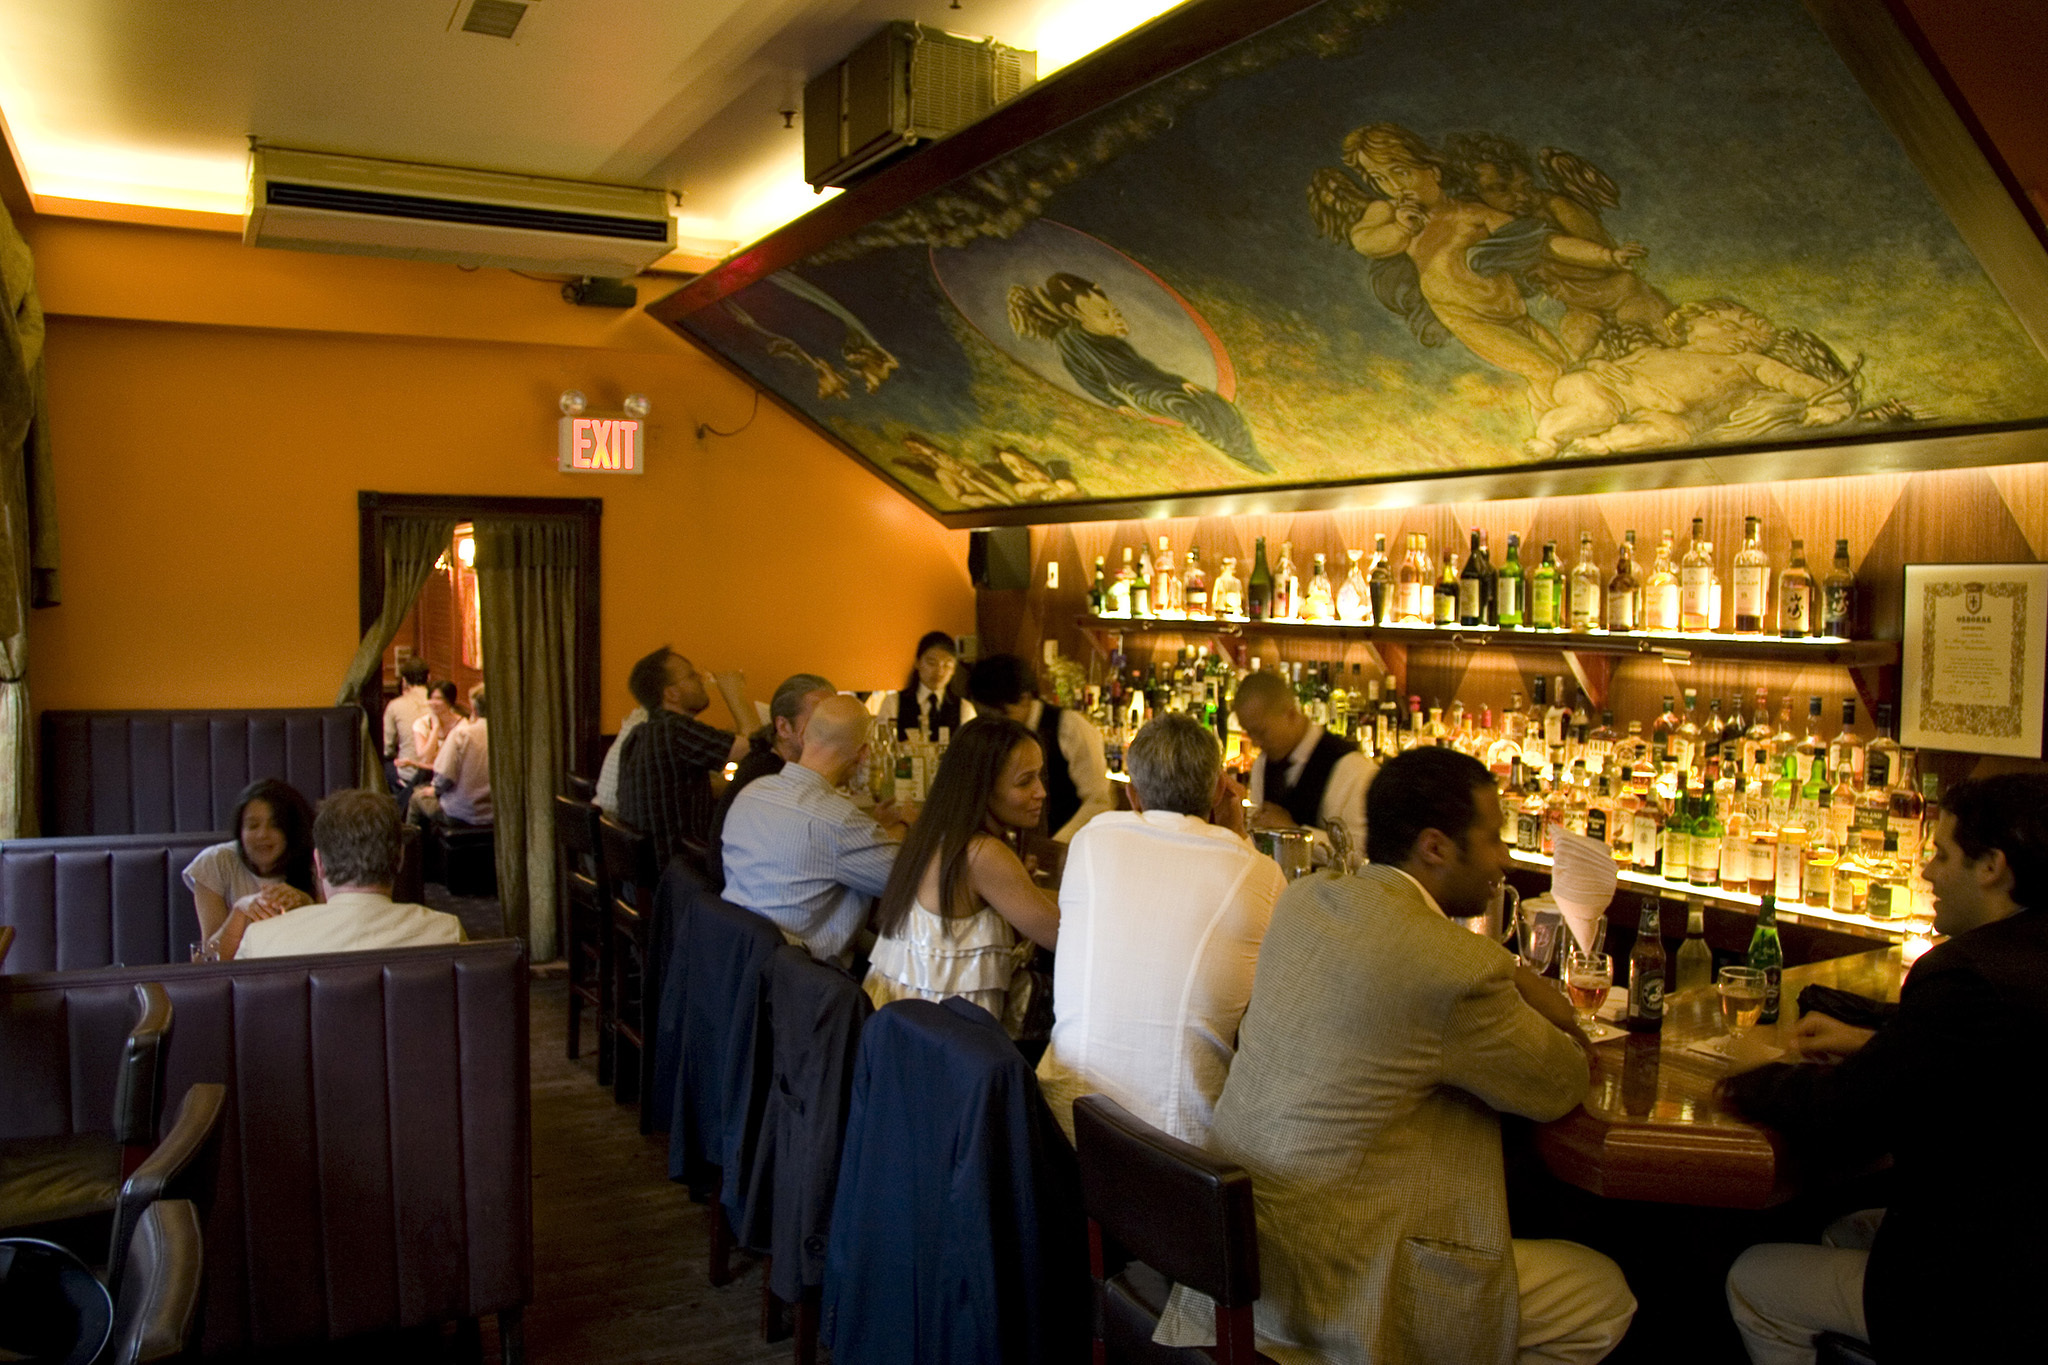 The Most Romantic Bars In New York City To Take Your Date